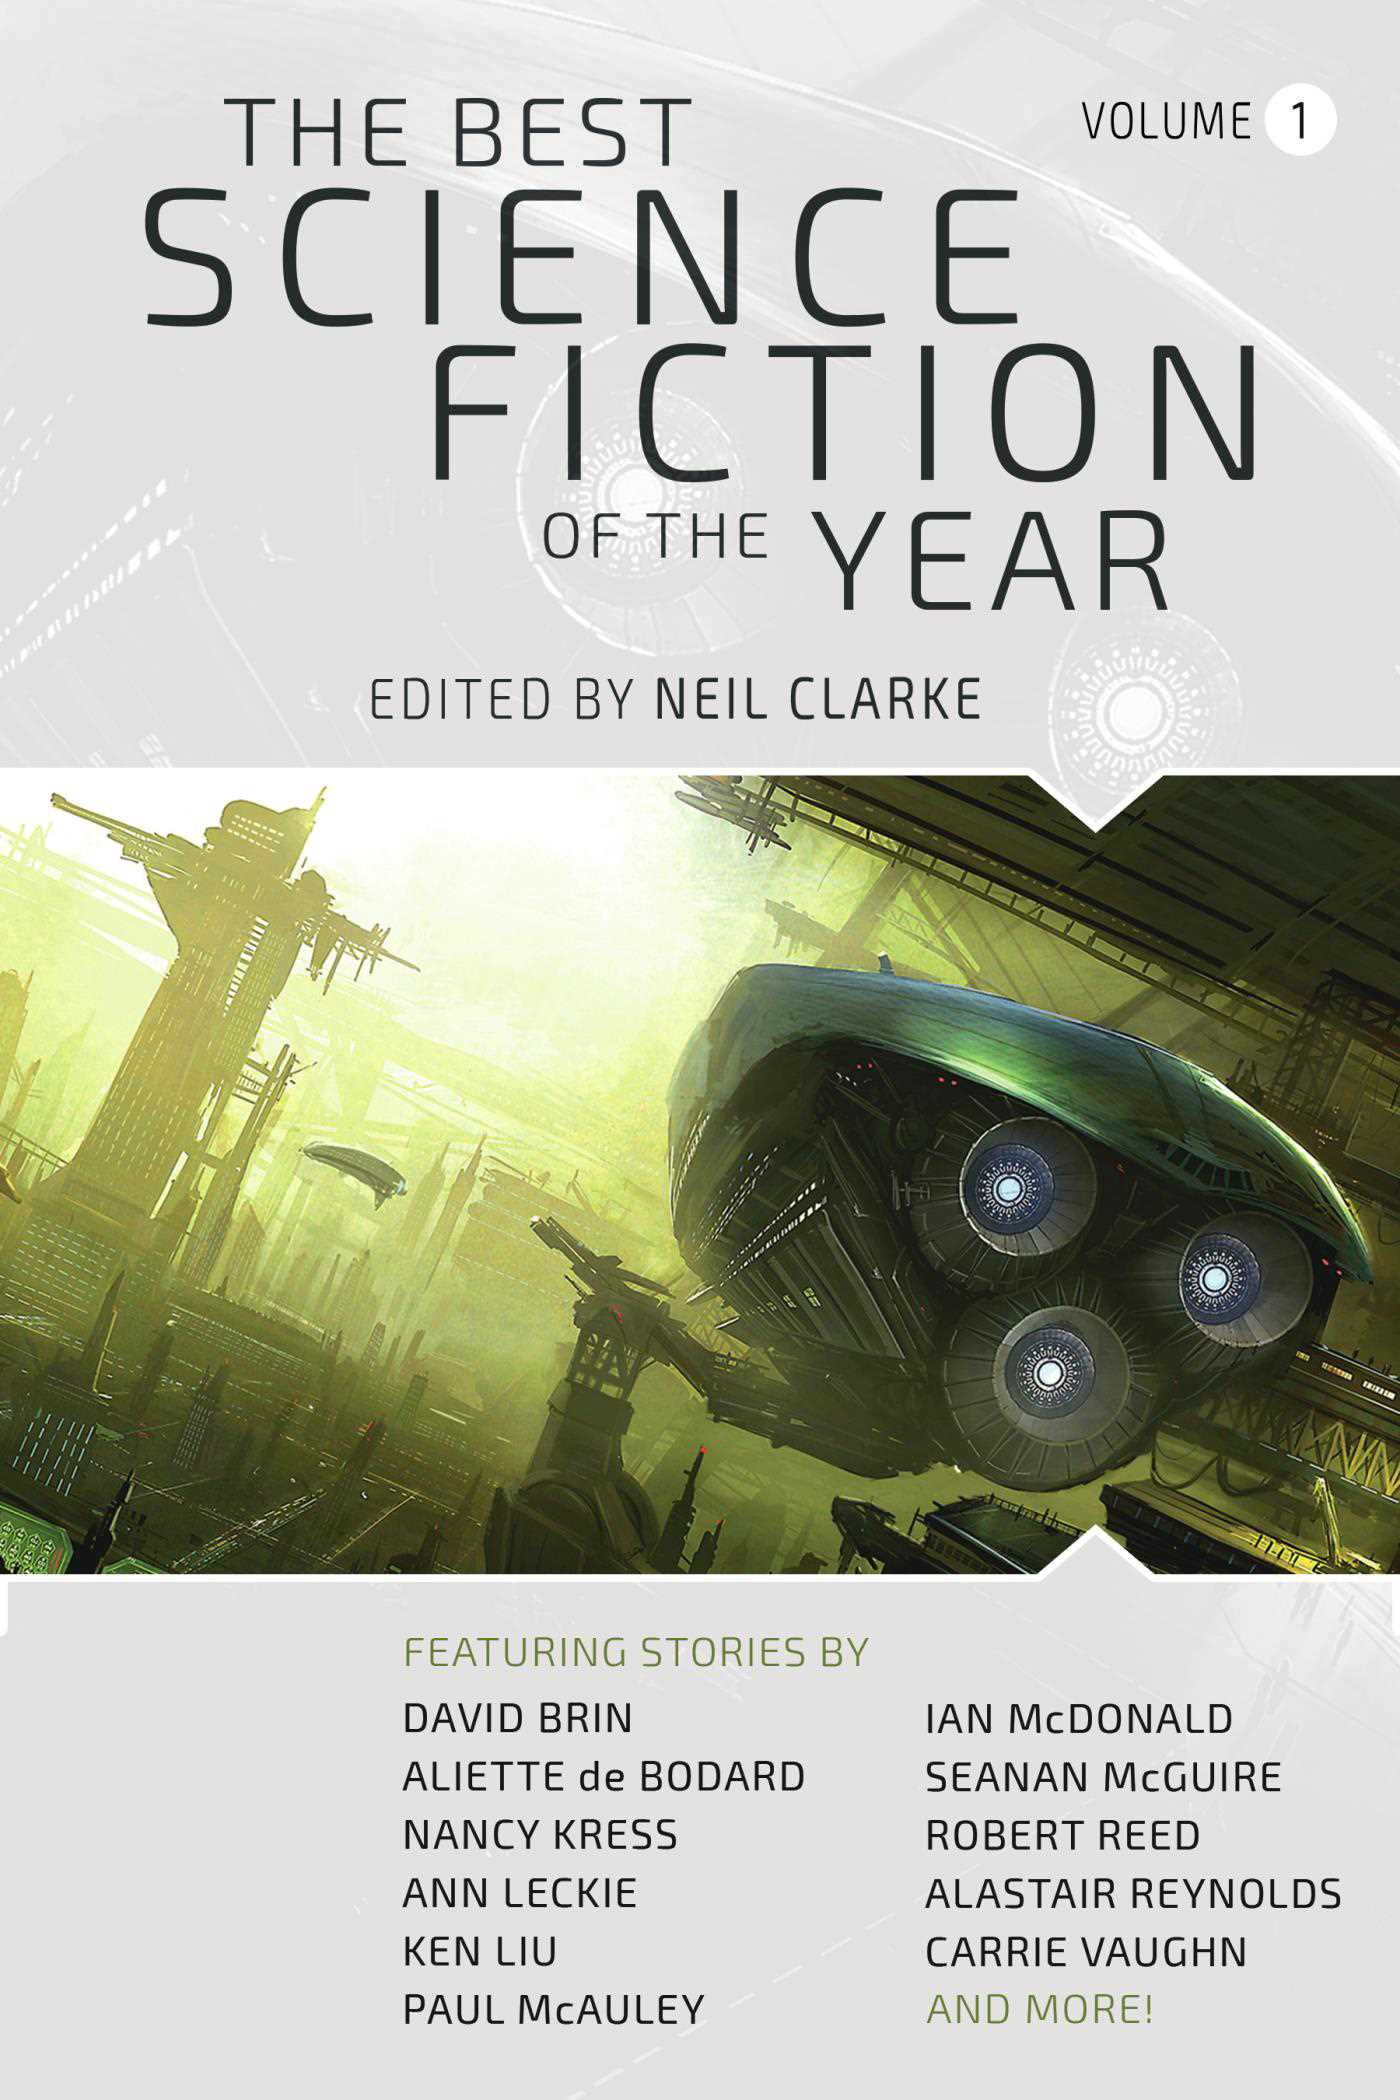 The greatest science fiction writers